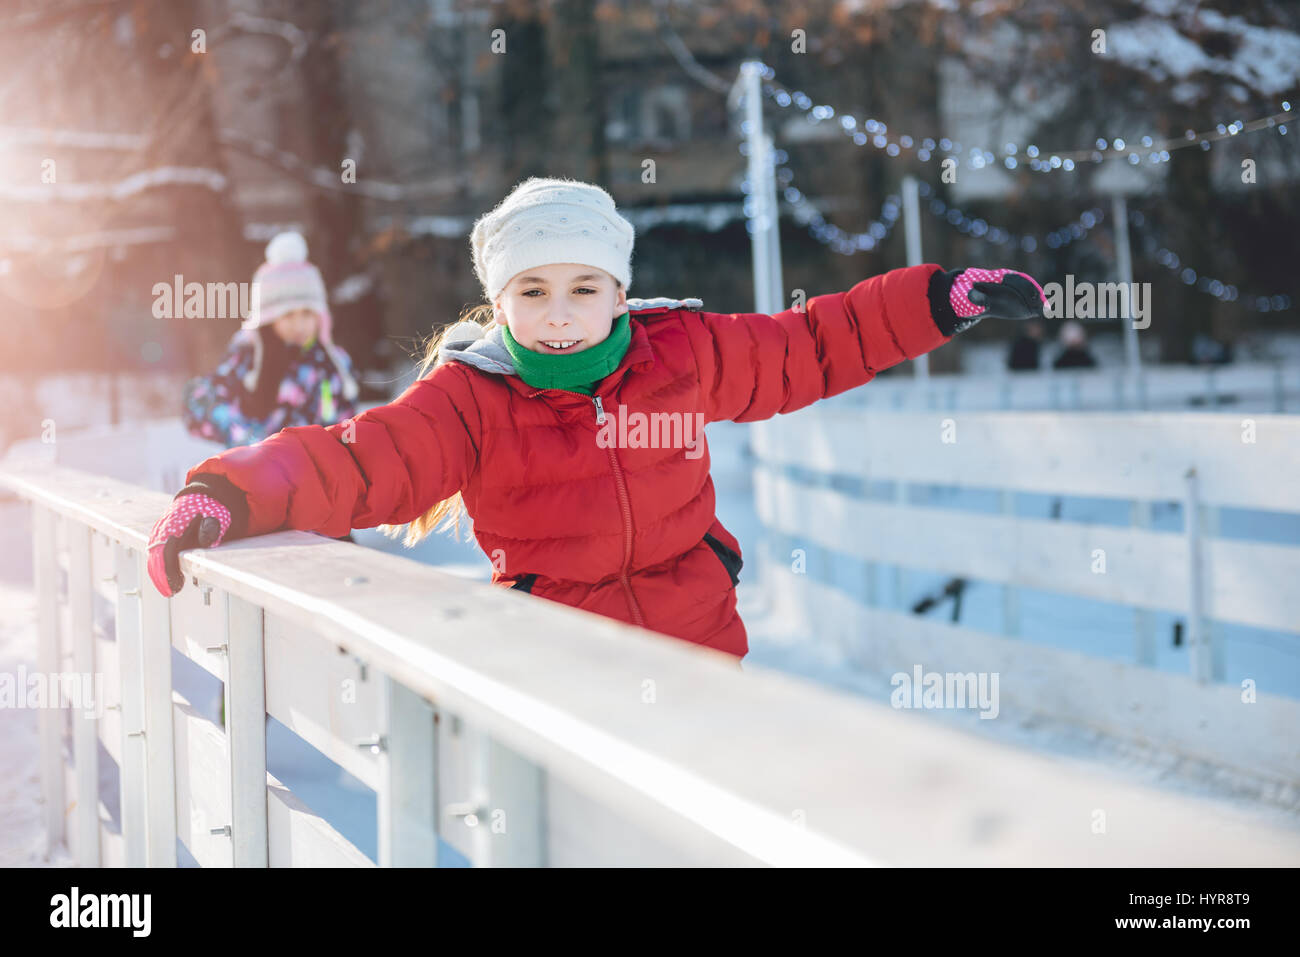 Two girls learning to skate on the temporary ice rink - Stock Image